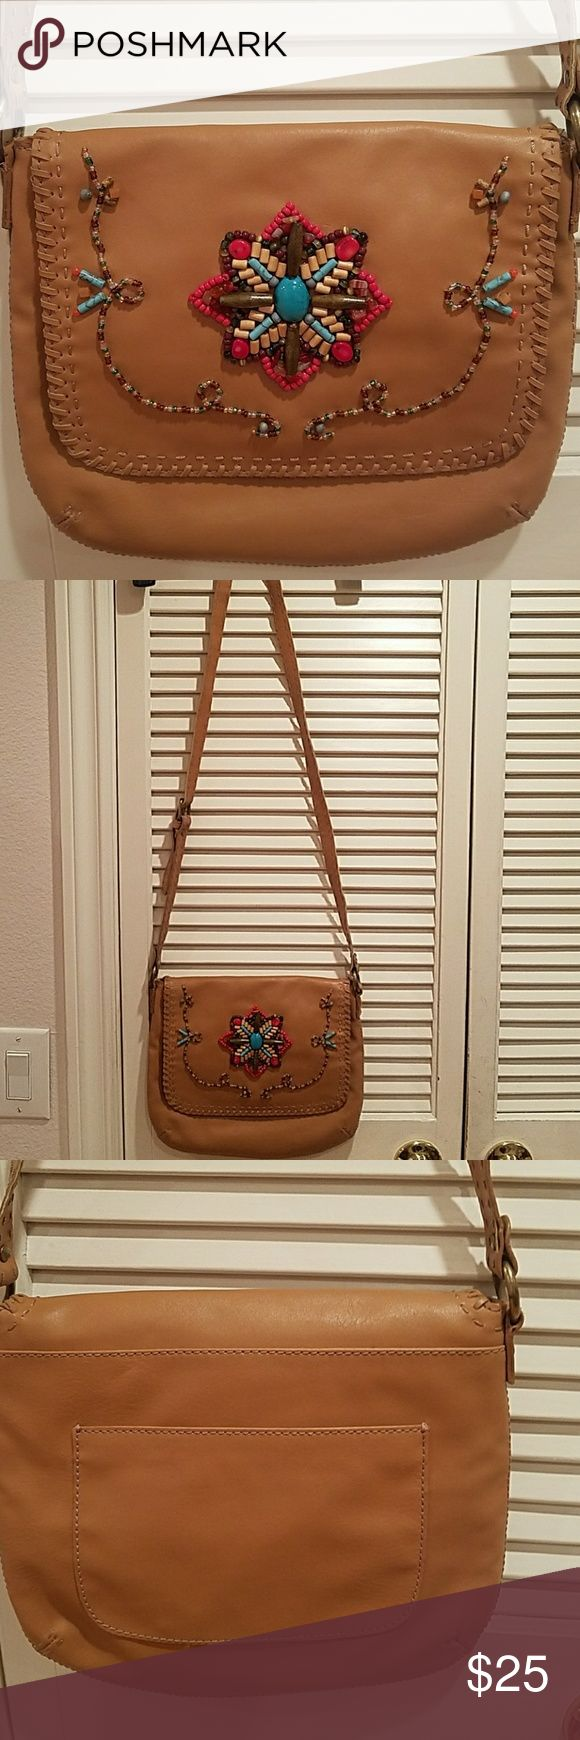 """Nine West Boho Faux leather crossbody bag Excellent pre-owned condition Beaded front detail 1 pocket on back Snap button closure Faux leather for easy cleaning 3 credit card slots inside 1 zip pocket  And 1 small open pocket  11 x 8 1/2"""" Strap drop is 22"""" Perfect for festivals Nine West Bags Crossbody Bags"""